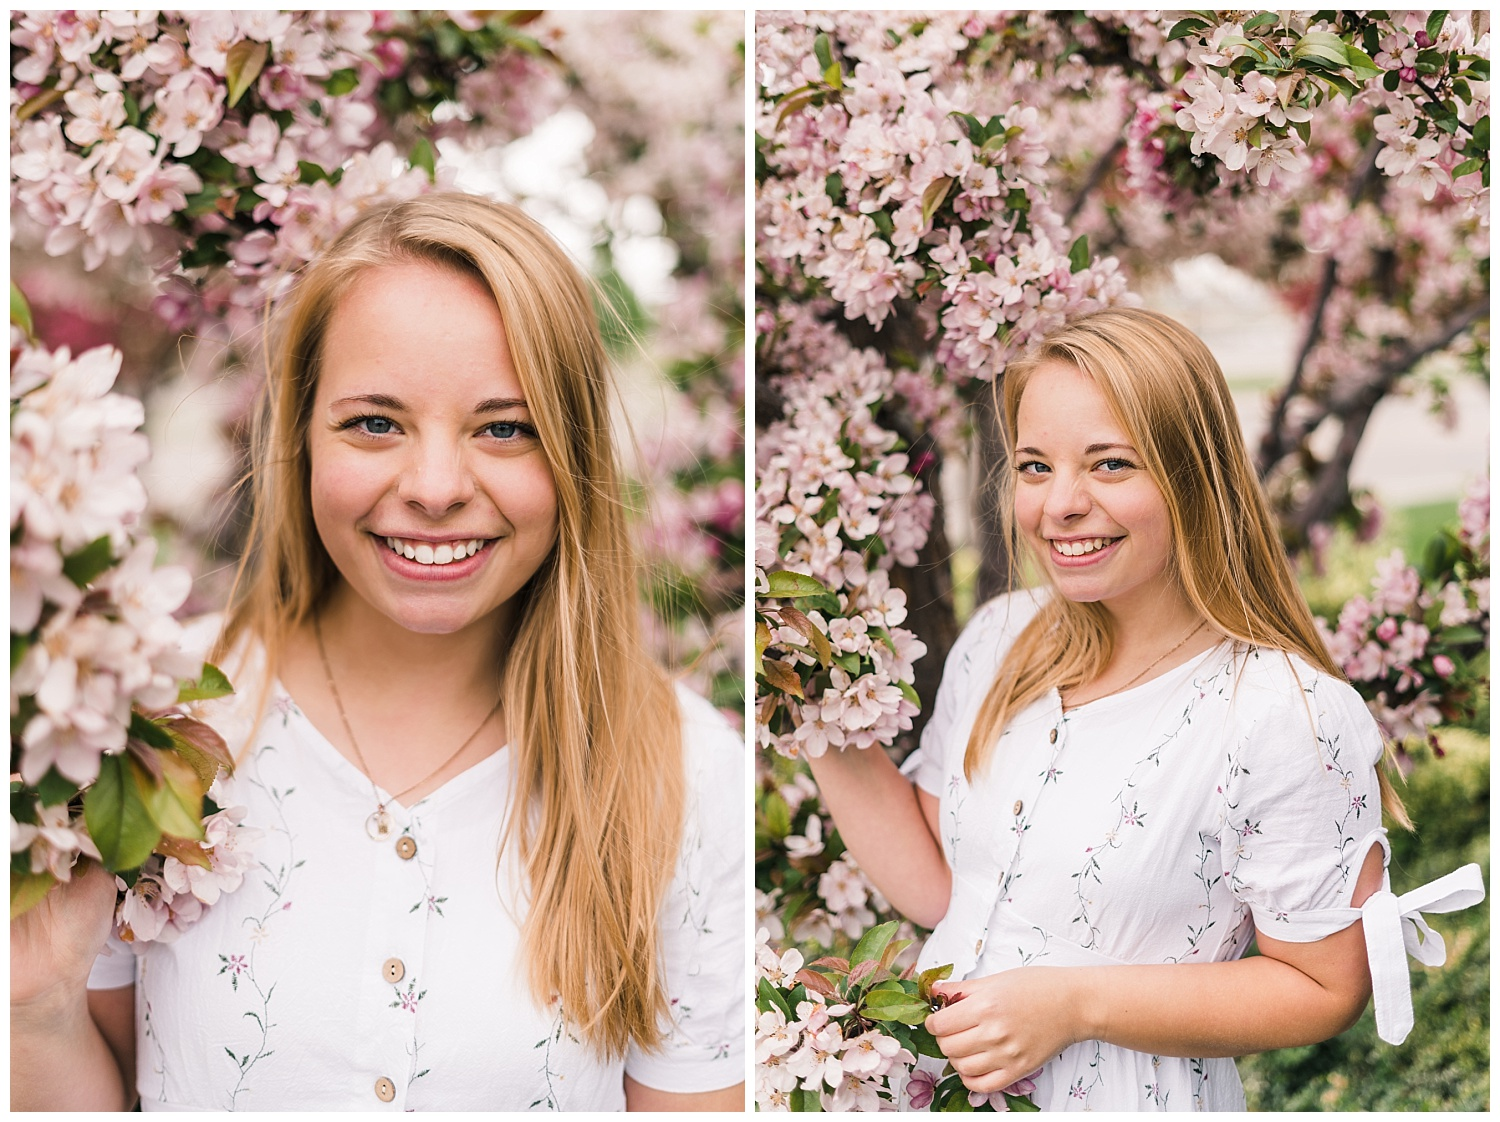 Women's Spring Portrait Session Idaho Portrait Photographer Rexburg Idaho